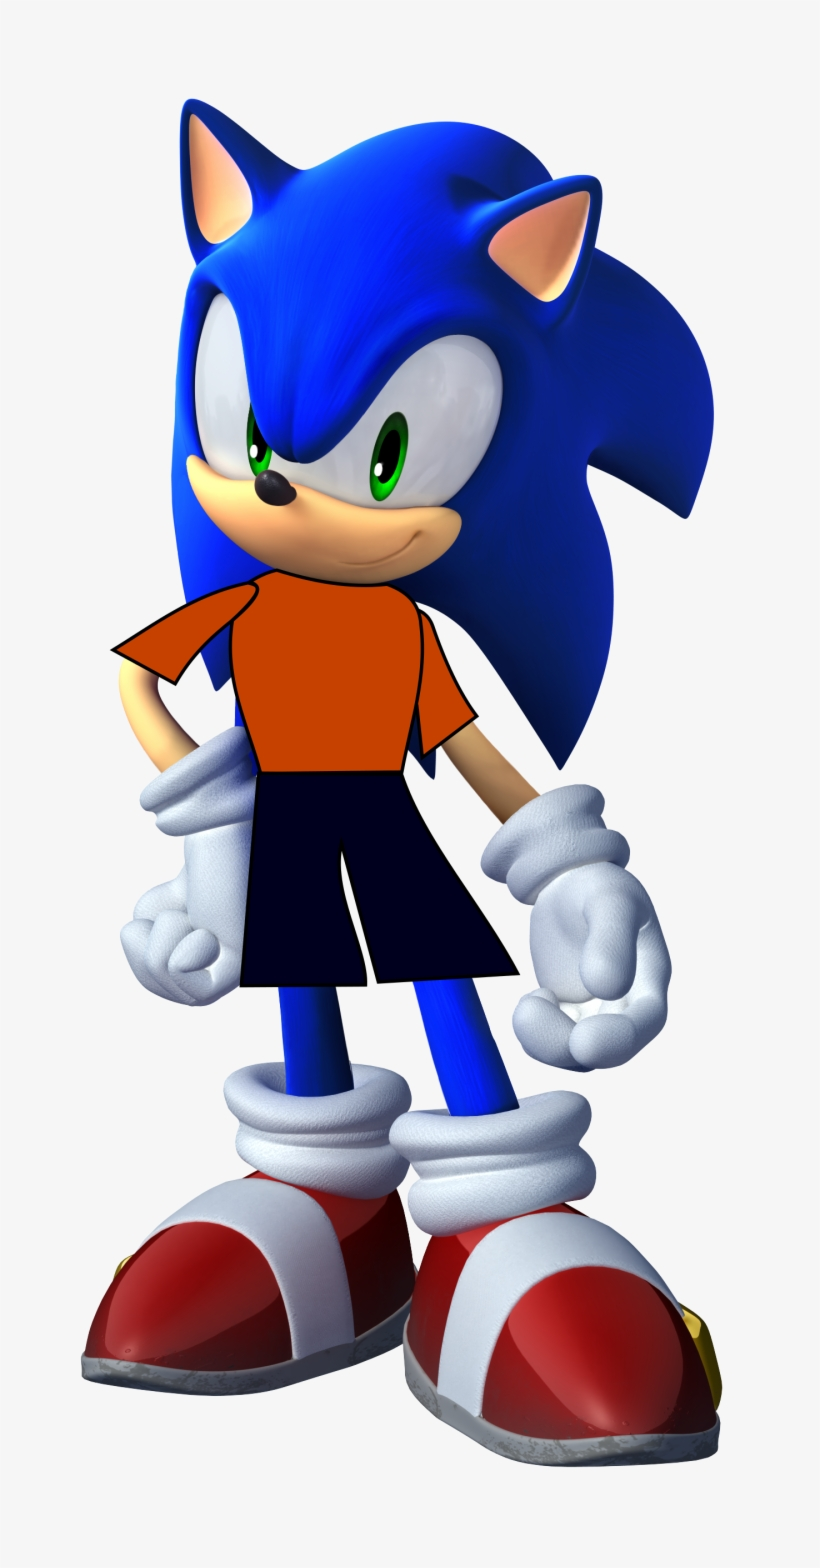 Melee Remastered Characters Black Sonic The Hedgehog Png Image Transparent Png Free Download On Seekpng